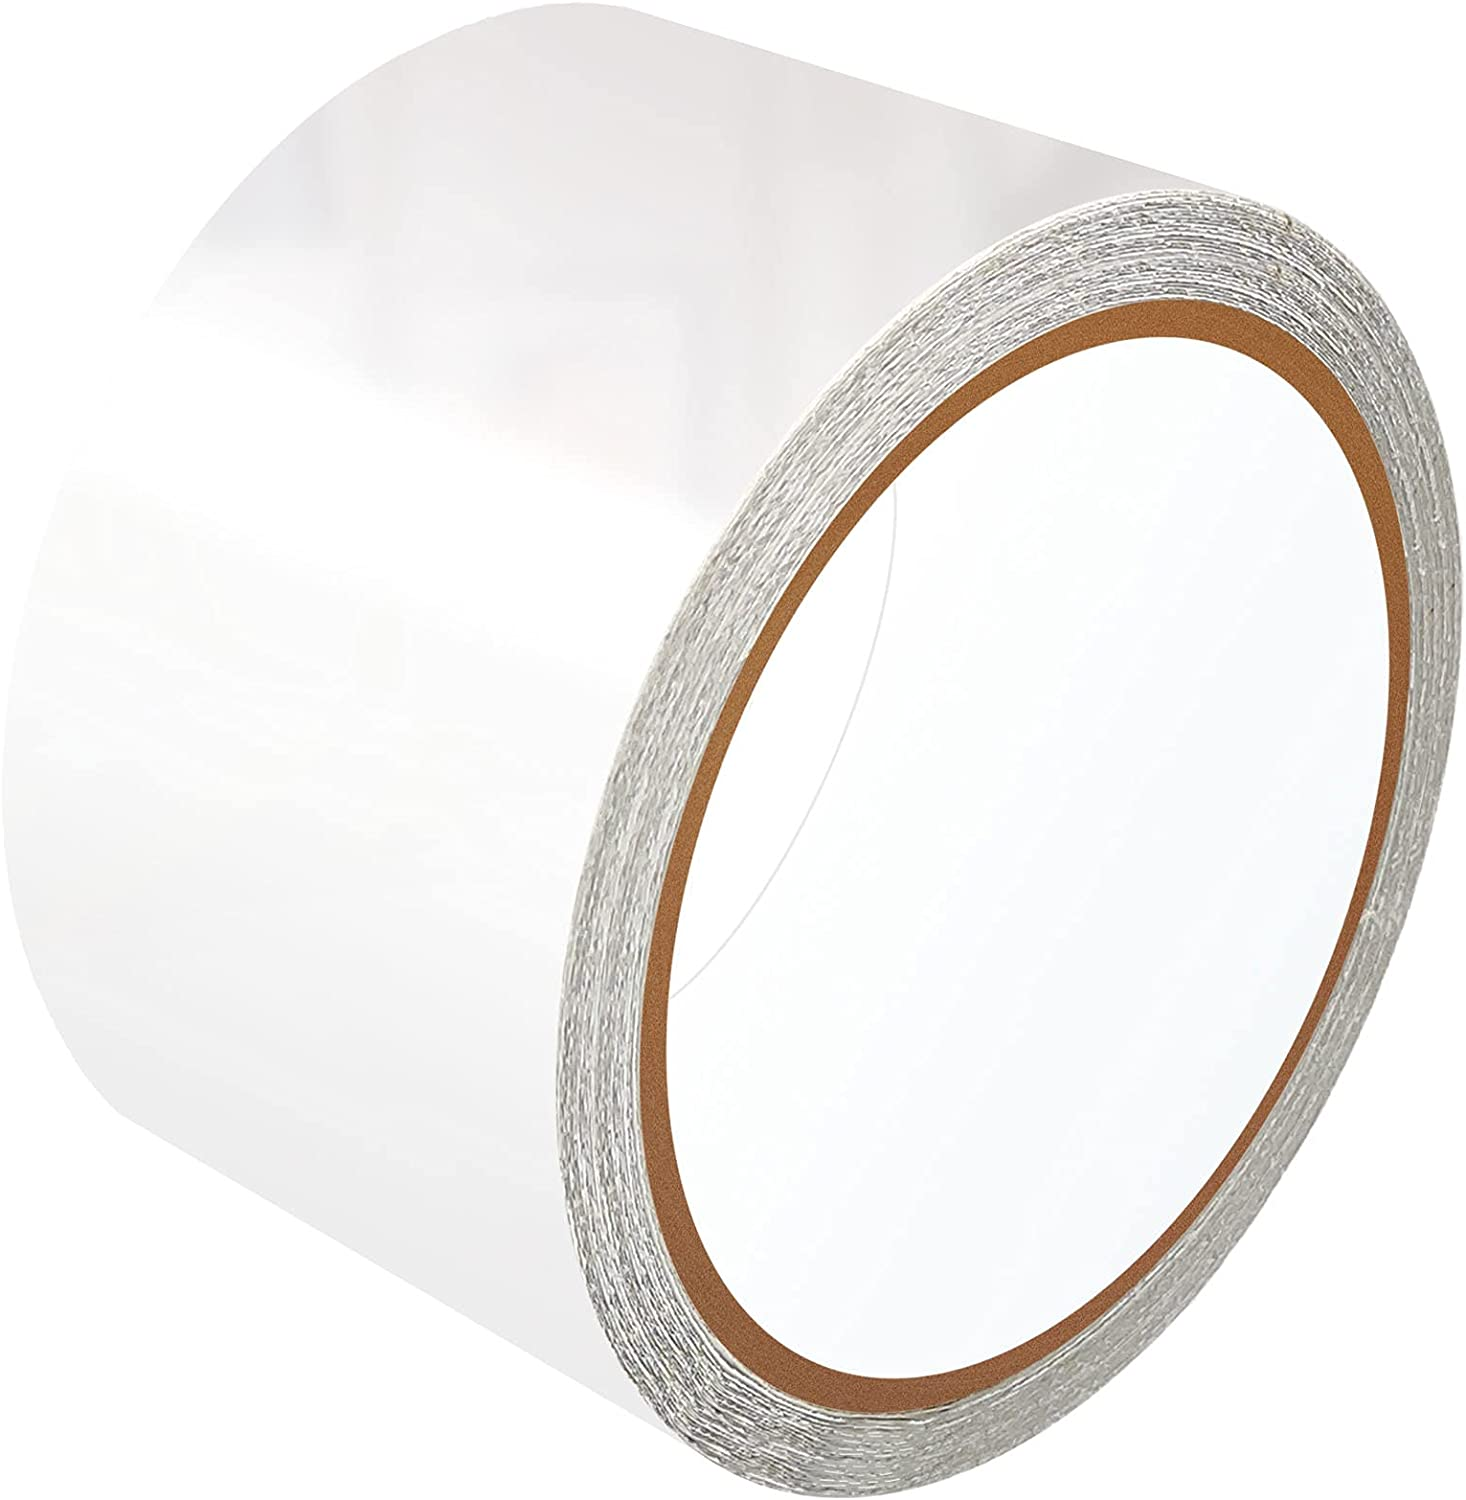 LANUCN Invisible Tent Repair Tape 5cm Tenacious Max Safety and trust 70% OFF x Duty 5m Heavy